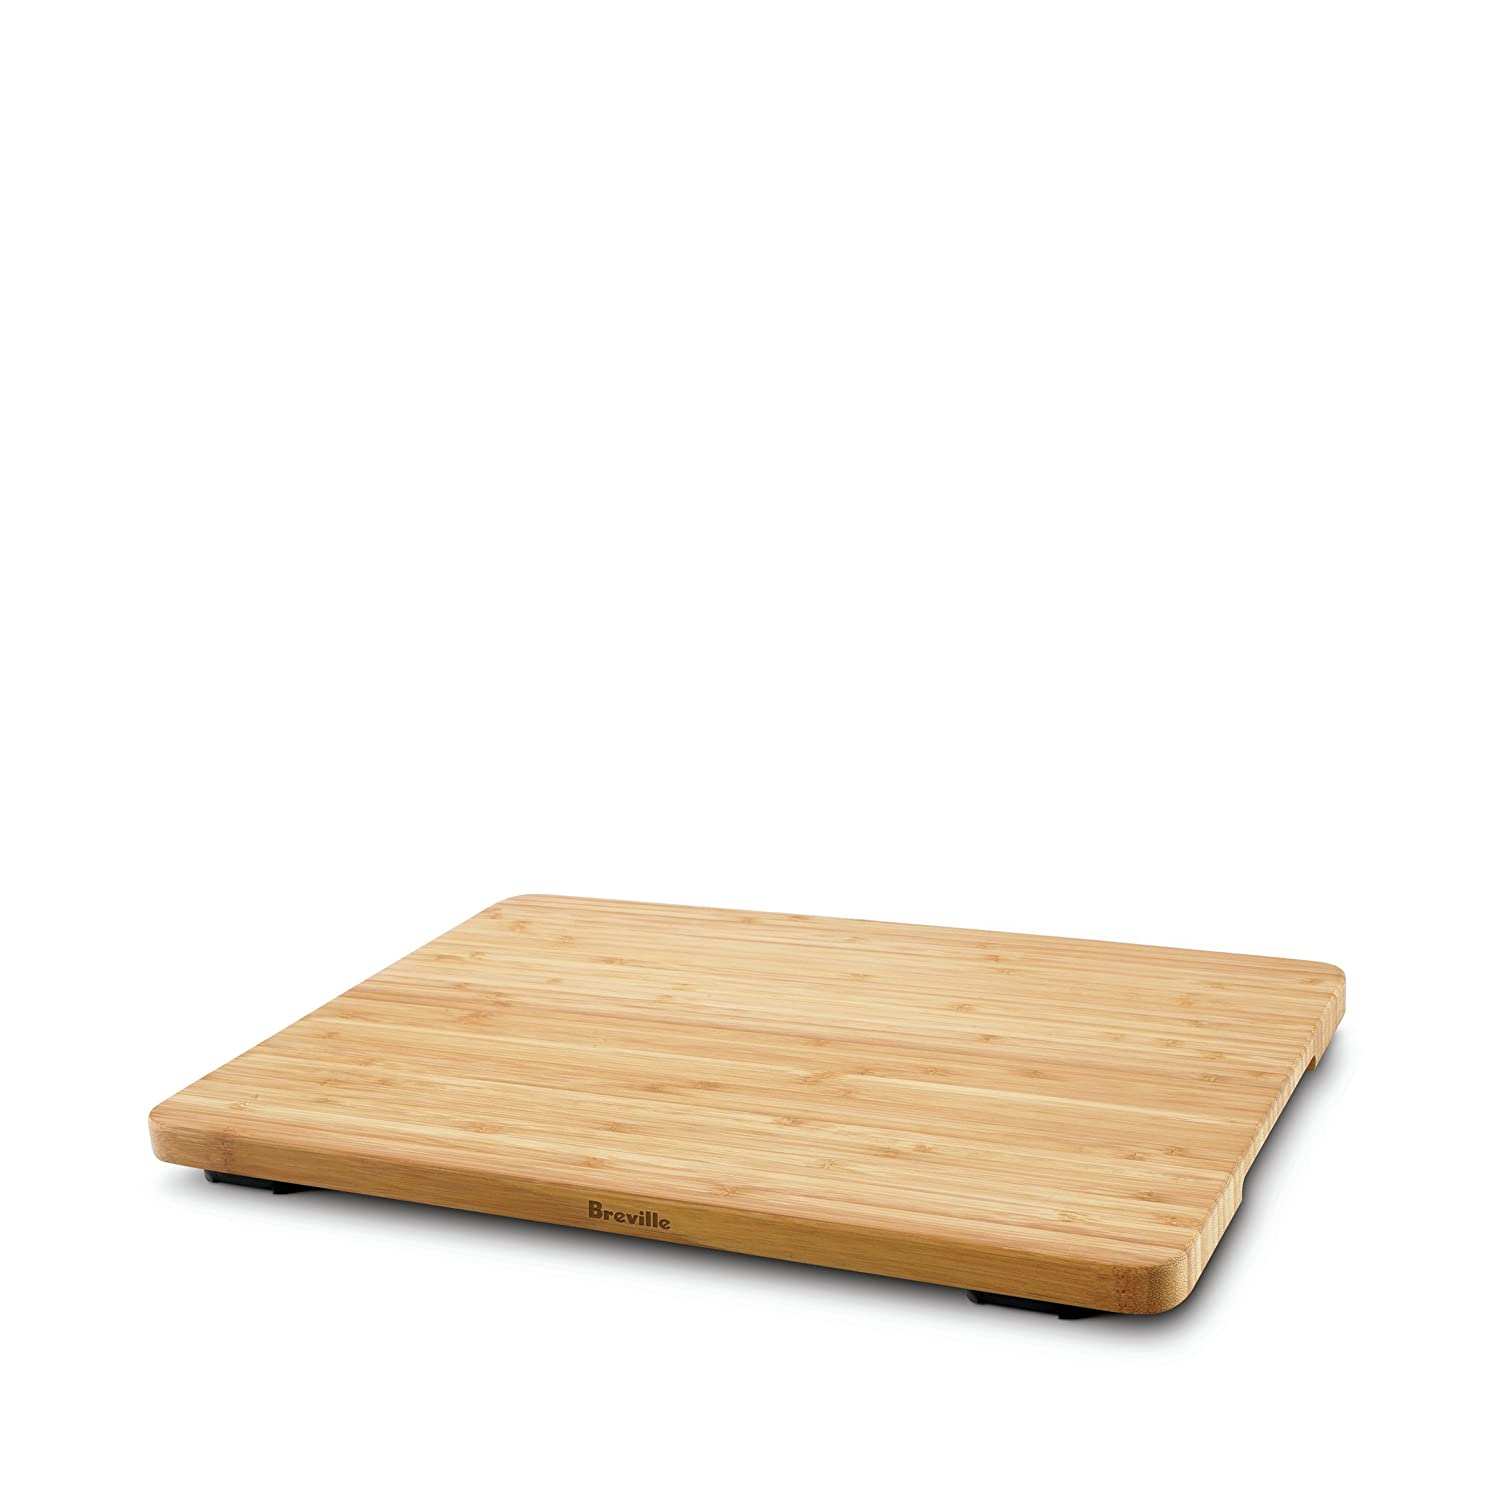 Breville BOV900ACB Bamboo Cutting Board, Brown